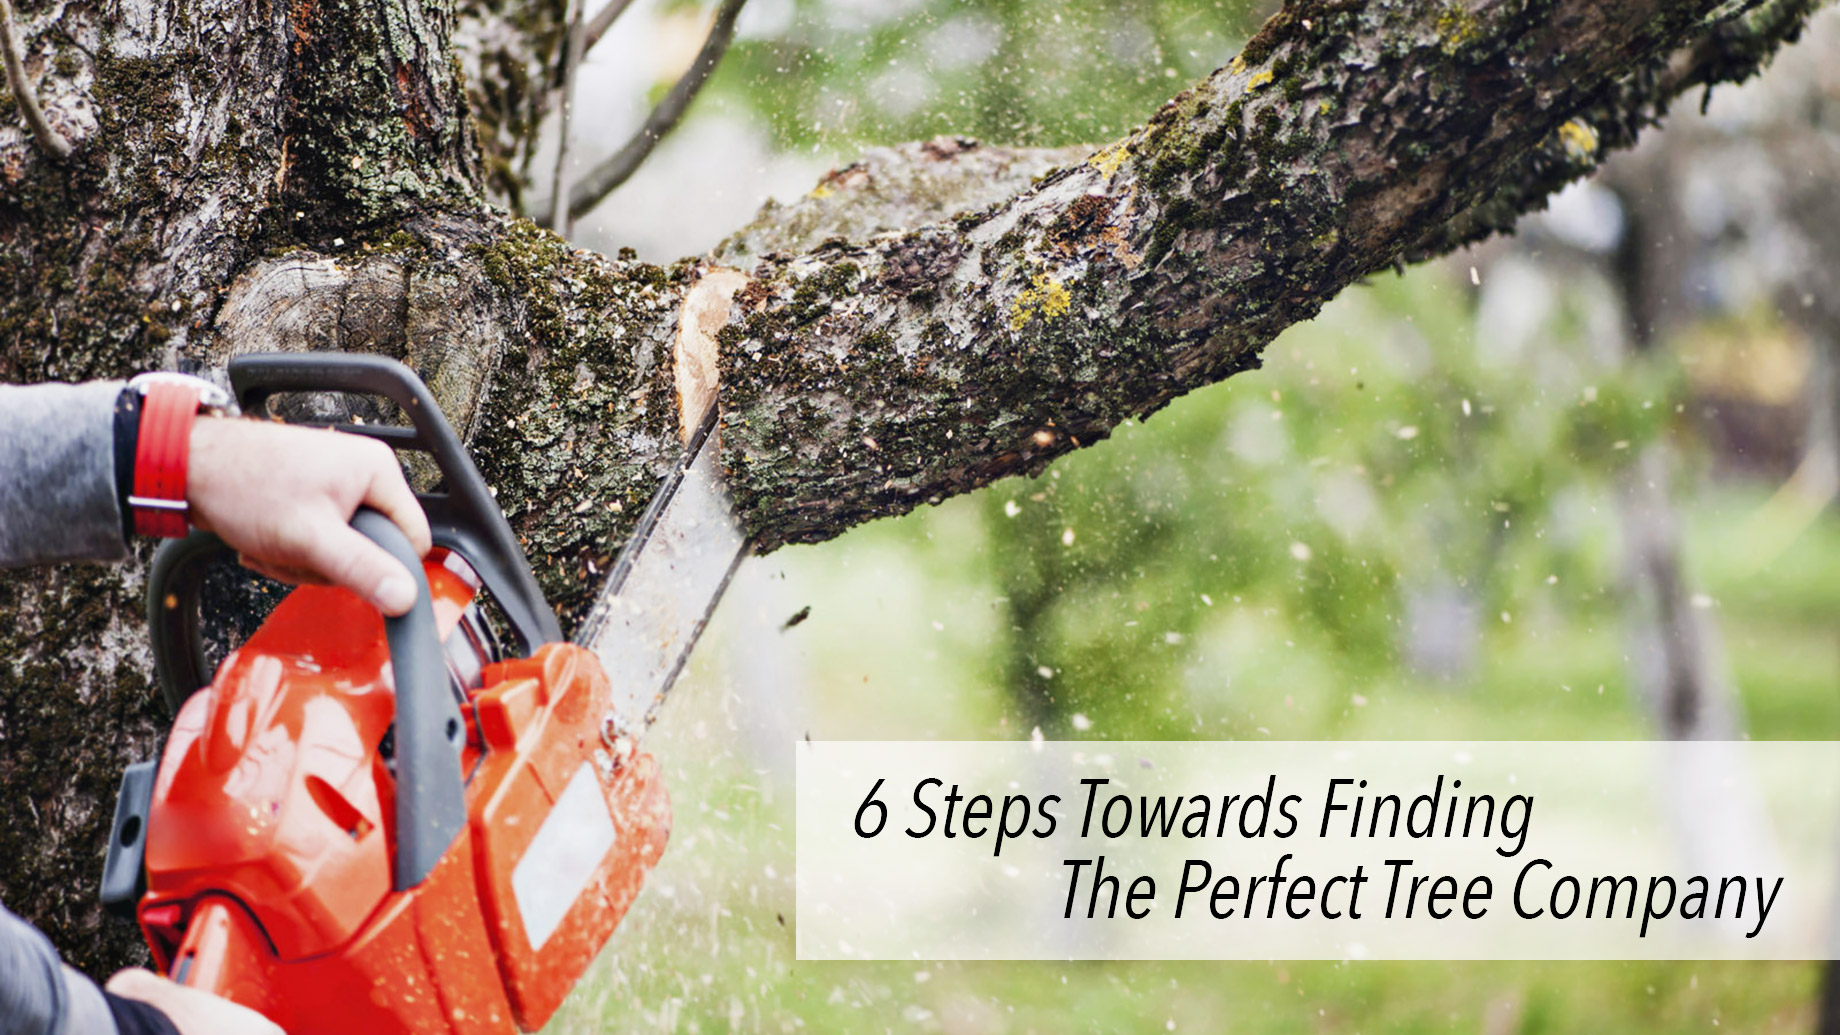 6 Steps Towards Finding The Perfect Tree Company